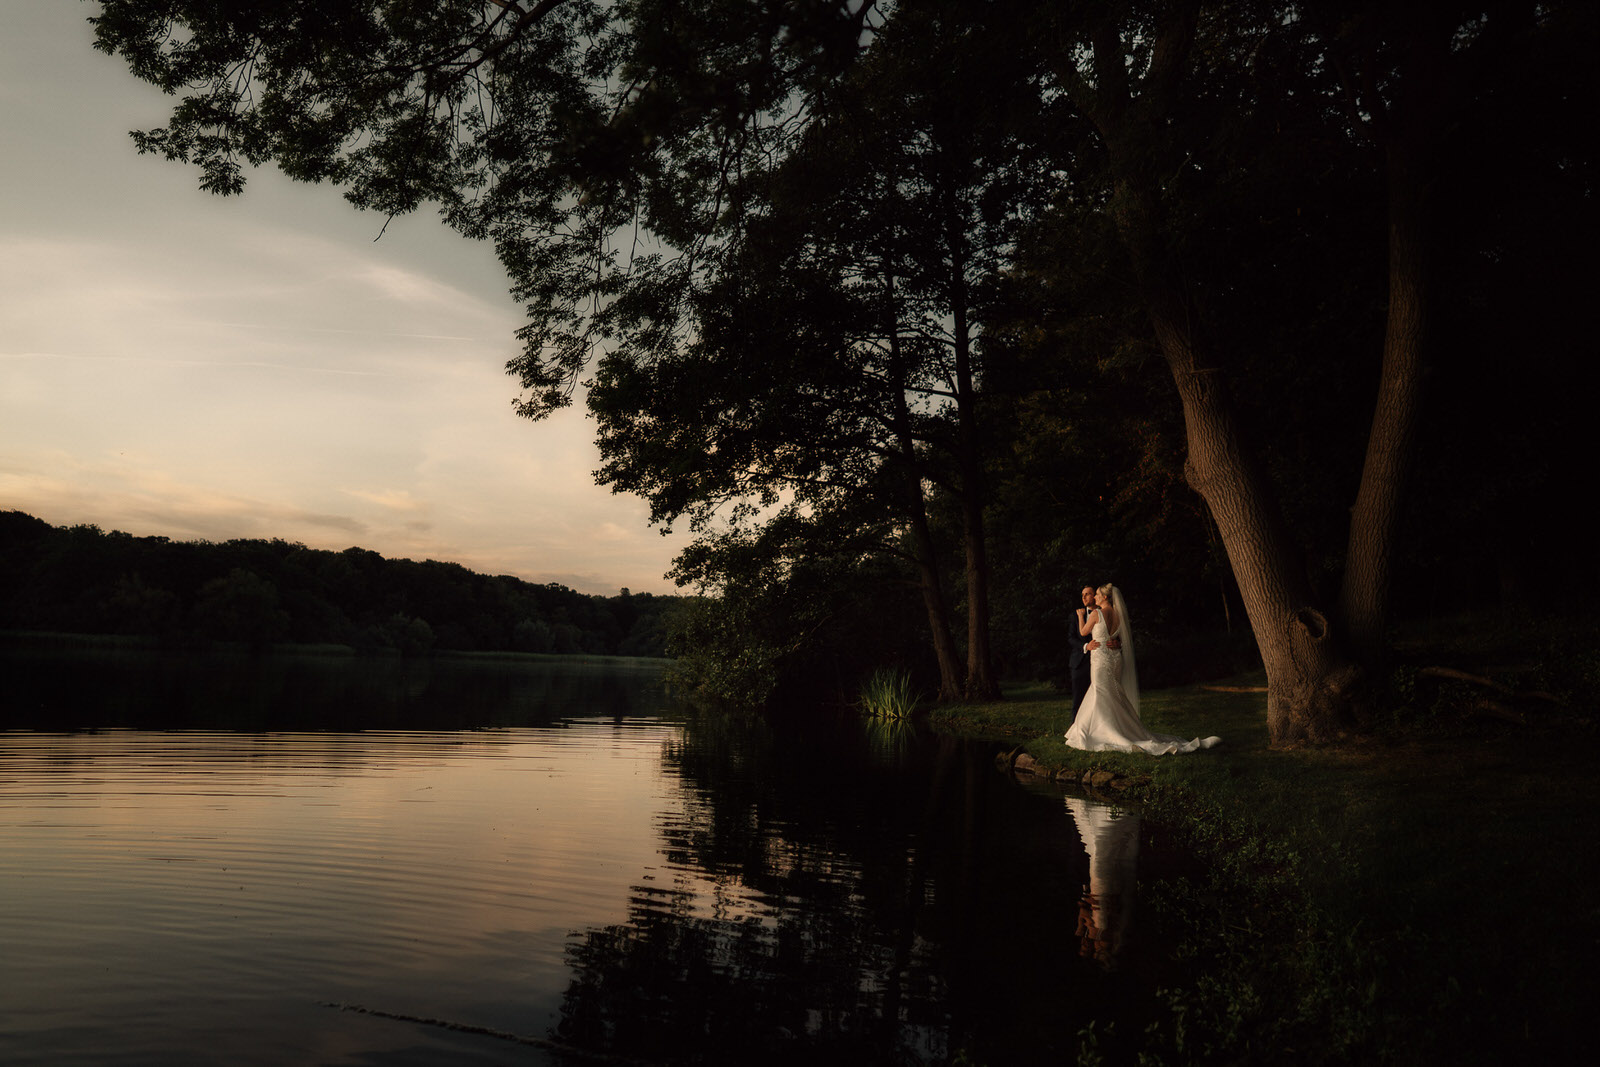 the edge of the beautiful lake is where the bride and groom stop for a few moments